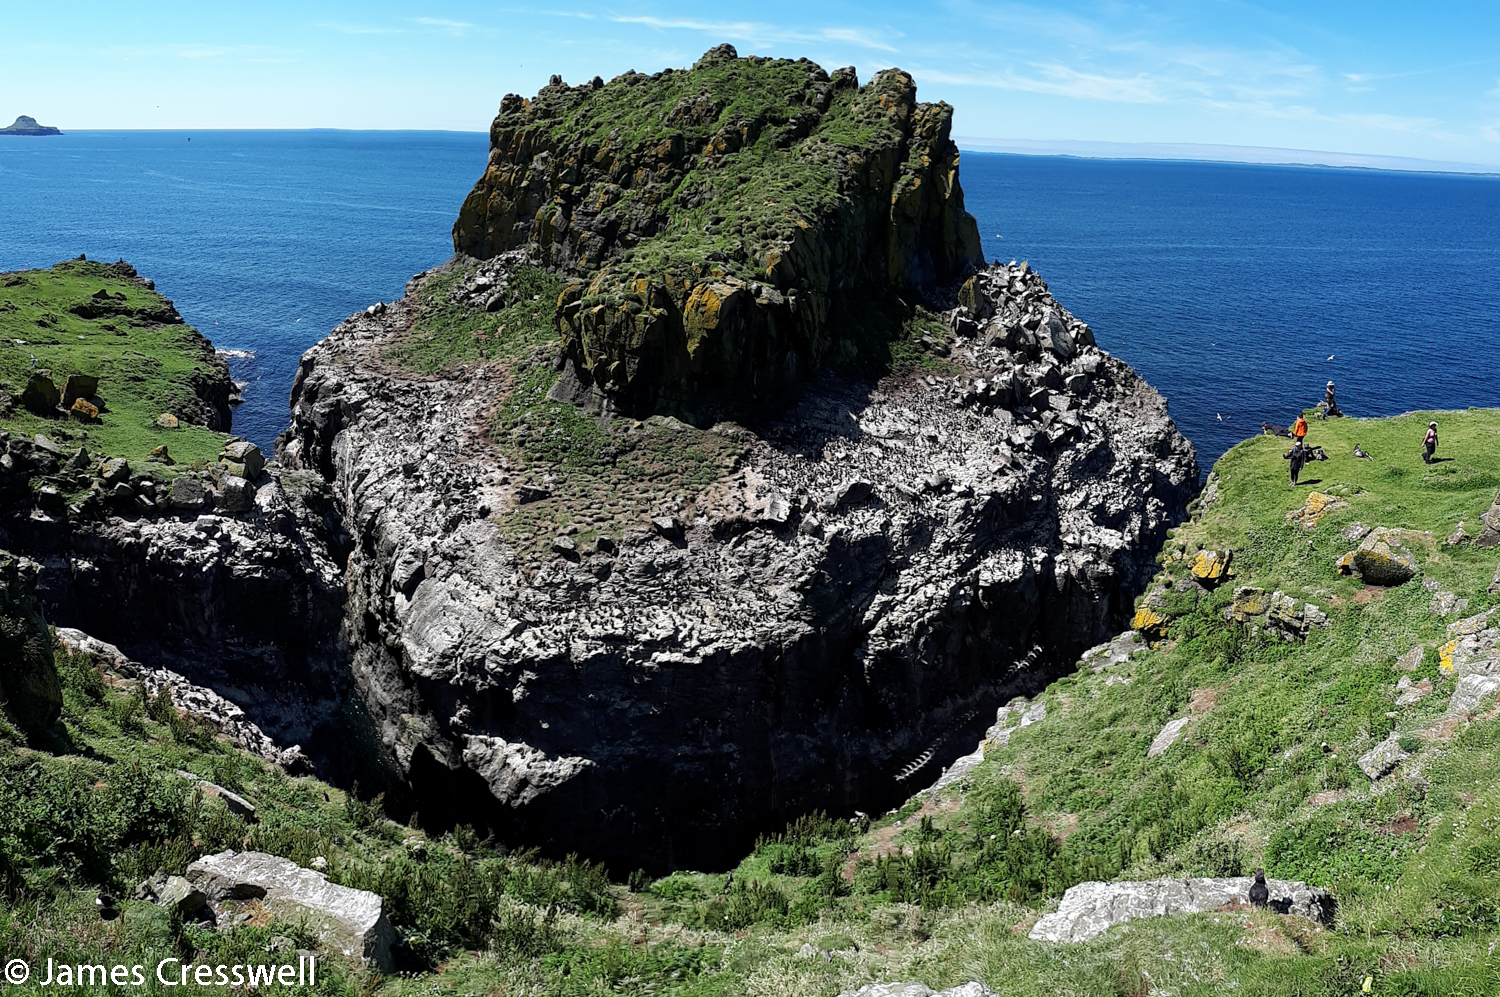 View of Harp Rock, Lunga